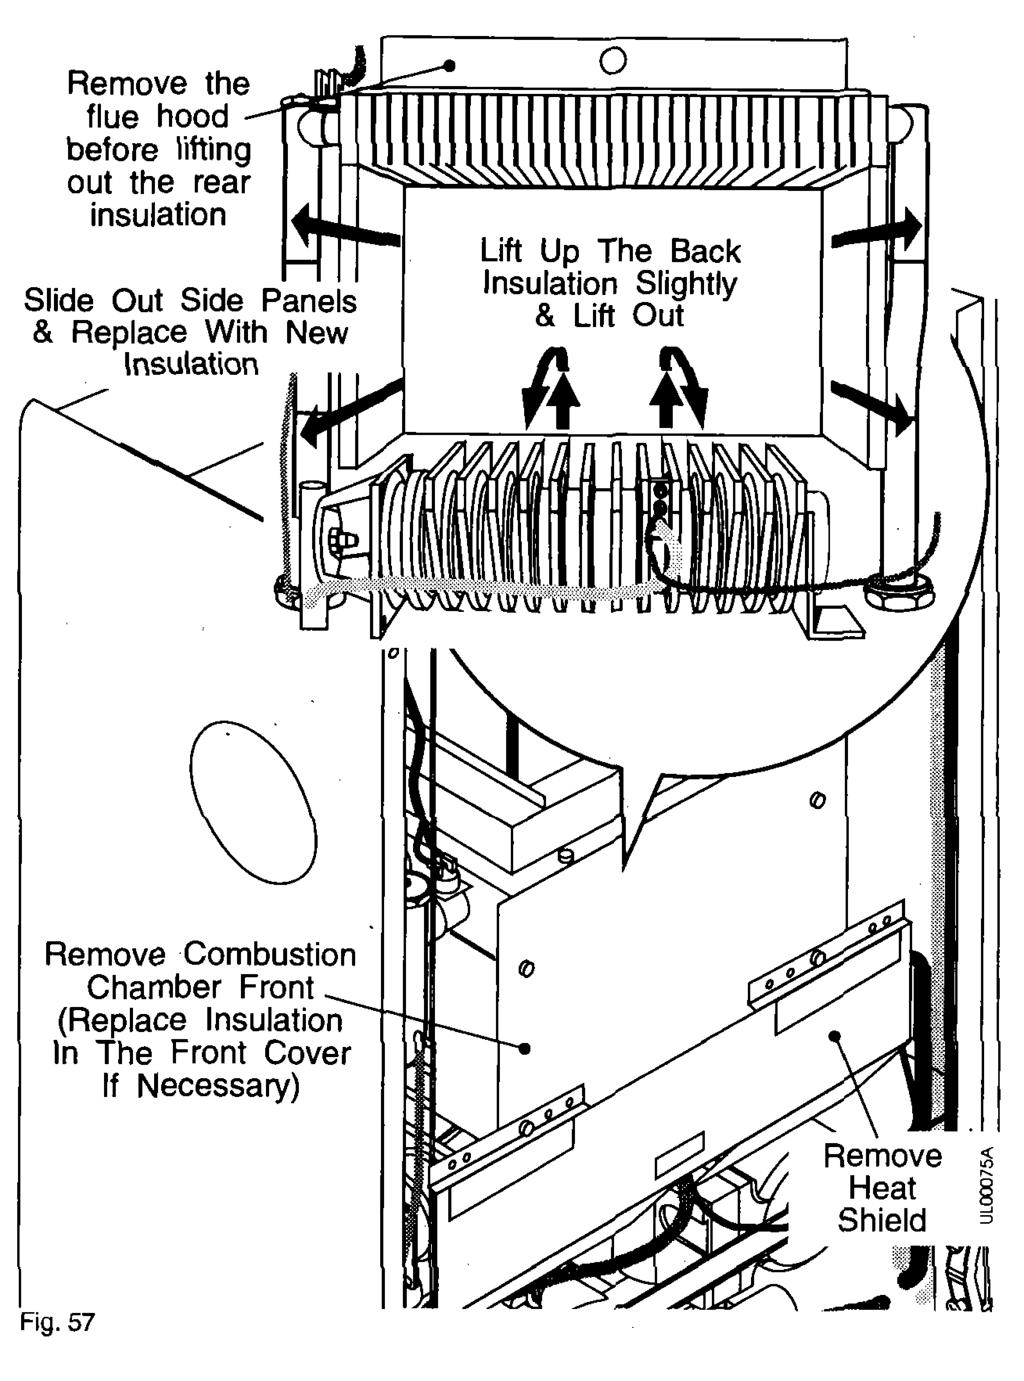 Replacement of Parts - Page 48 6.18 Combustion Chamber Insulation Panels 1. Gain General Access - See Section 6.1 complete. 2. Remove the fan/diverter assembly - see Section 6.17. 3.